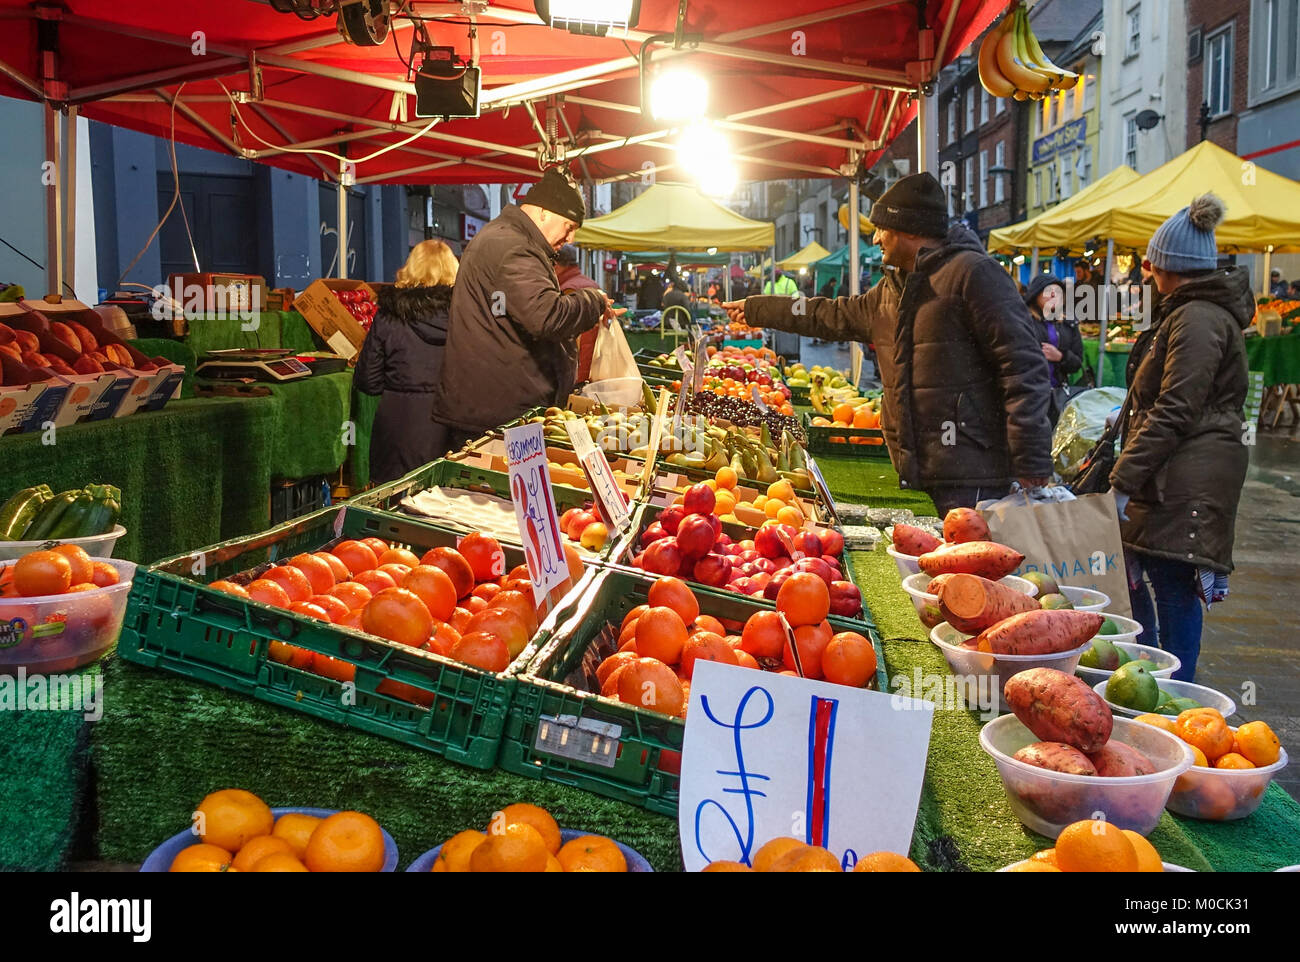 a-market-stall-vendor-on-a-fruit-and-veg-stall-makes-a-sale-at-surrey-M0CK31.jpg